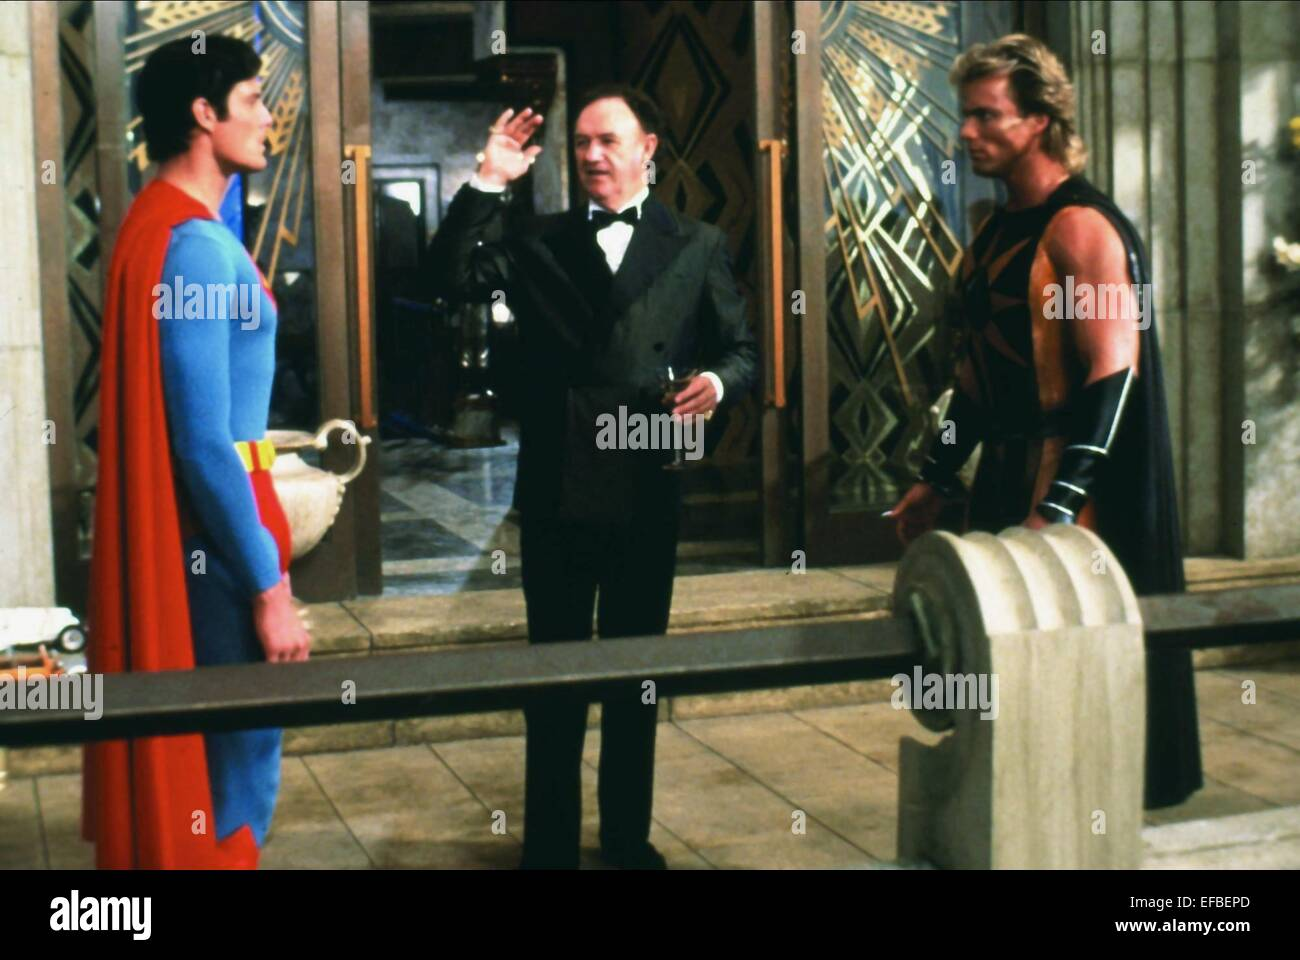 CHRISTOPHER REEVE, GENE HACKMAN, MARK PILLOW, SUPERMAN IV: THE QUEST FOR PEACE, 1987 - Stock Image